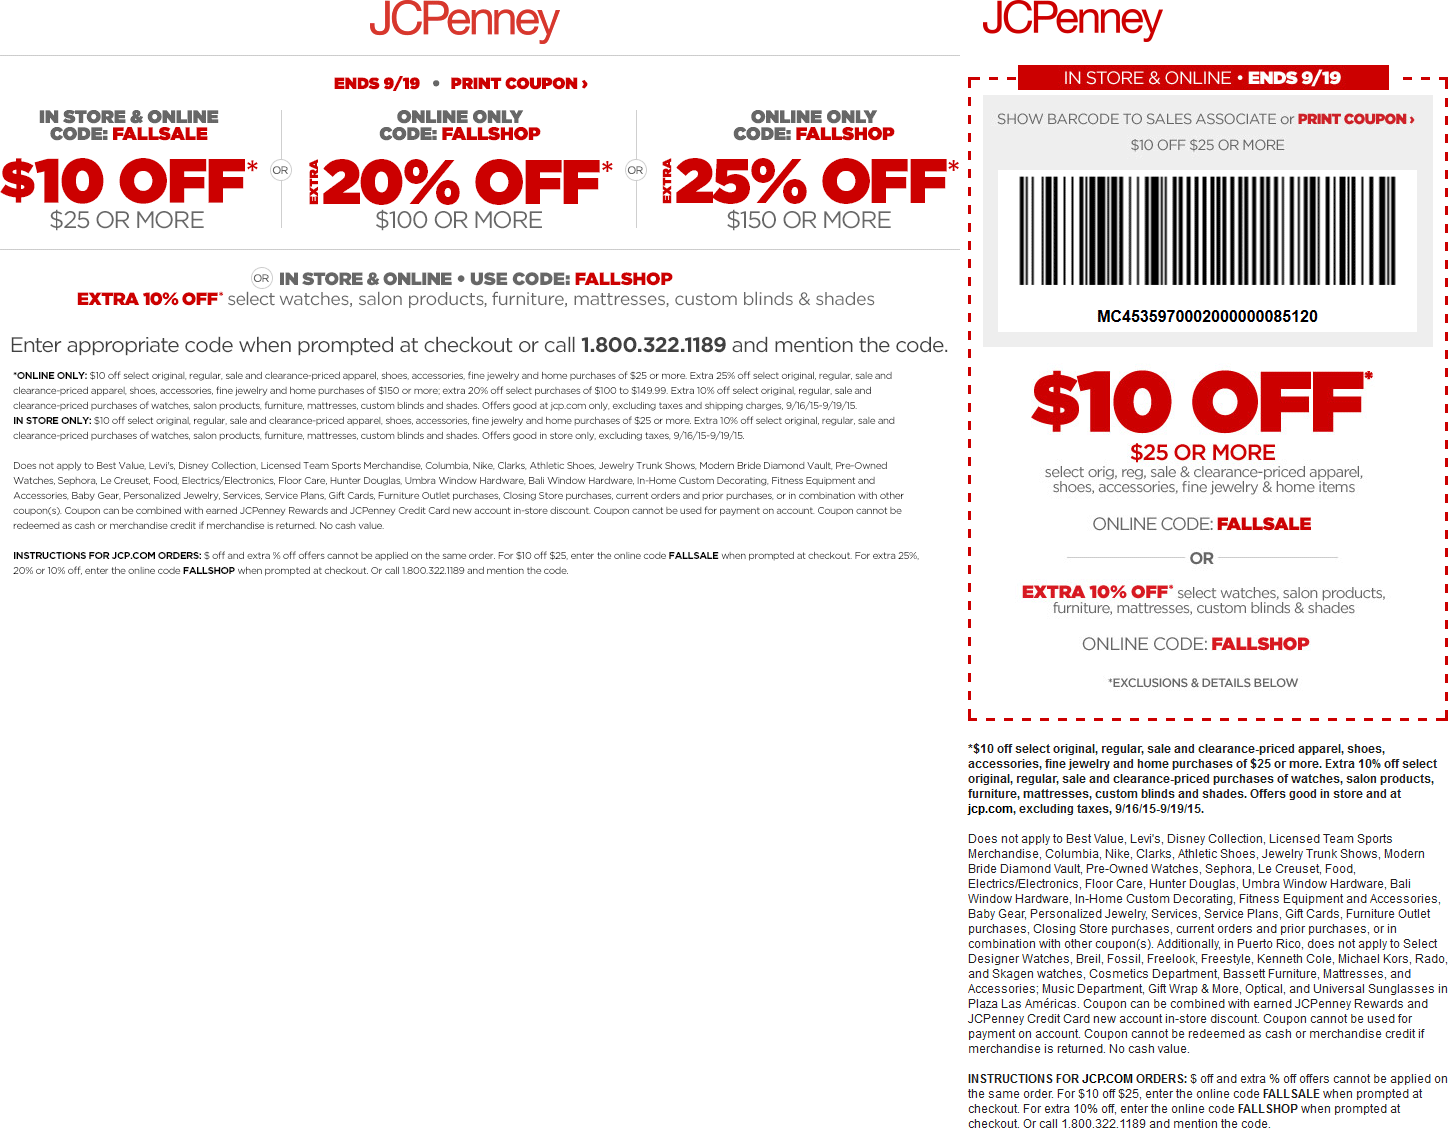 JCPenney Coupon September 2017 $10 off $25 & more at JCPenney, or online via promo code FALLSALE